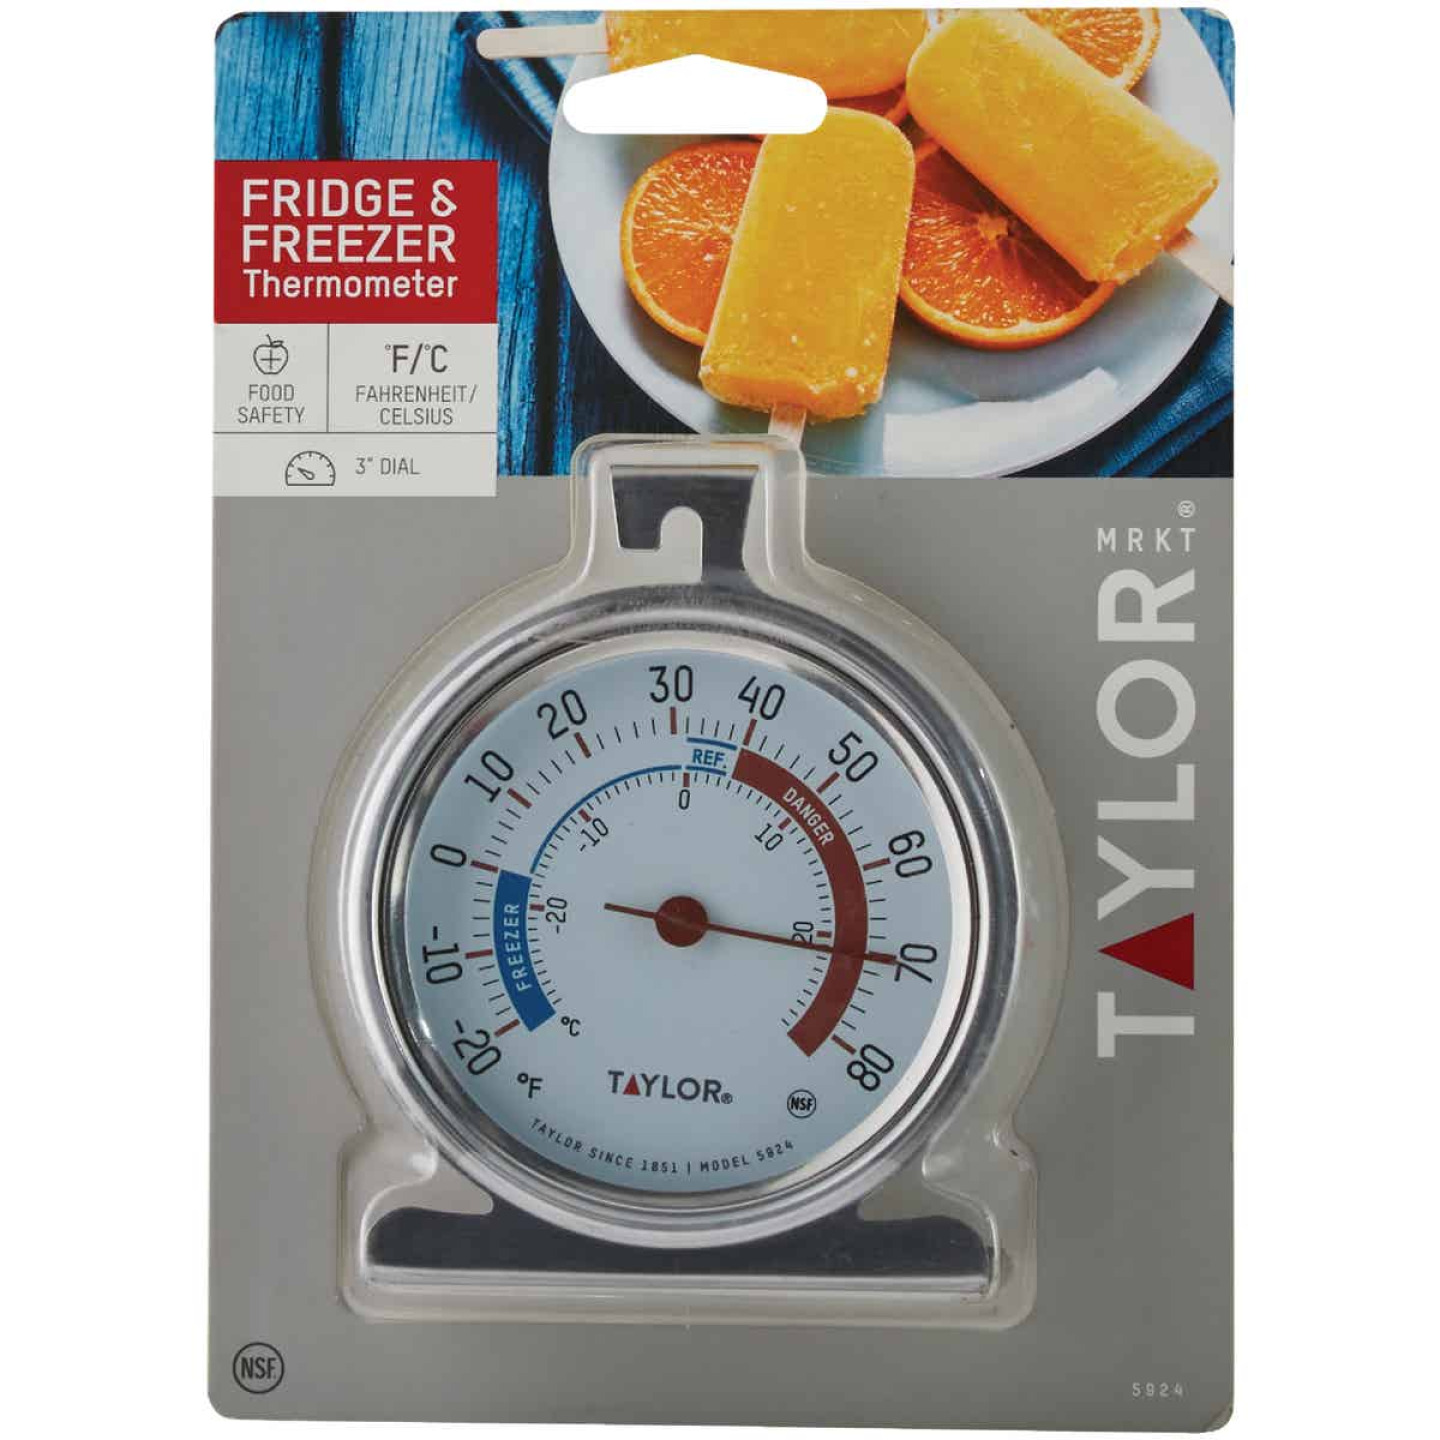 Taylor Classic Freezer Or Refrigerator Kitchen Thermometer Image 2